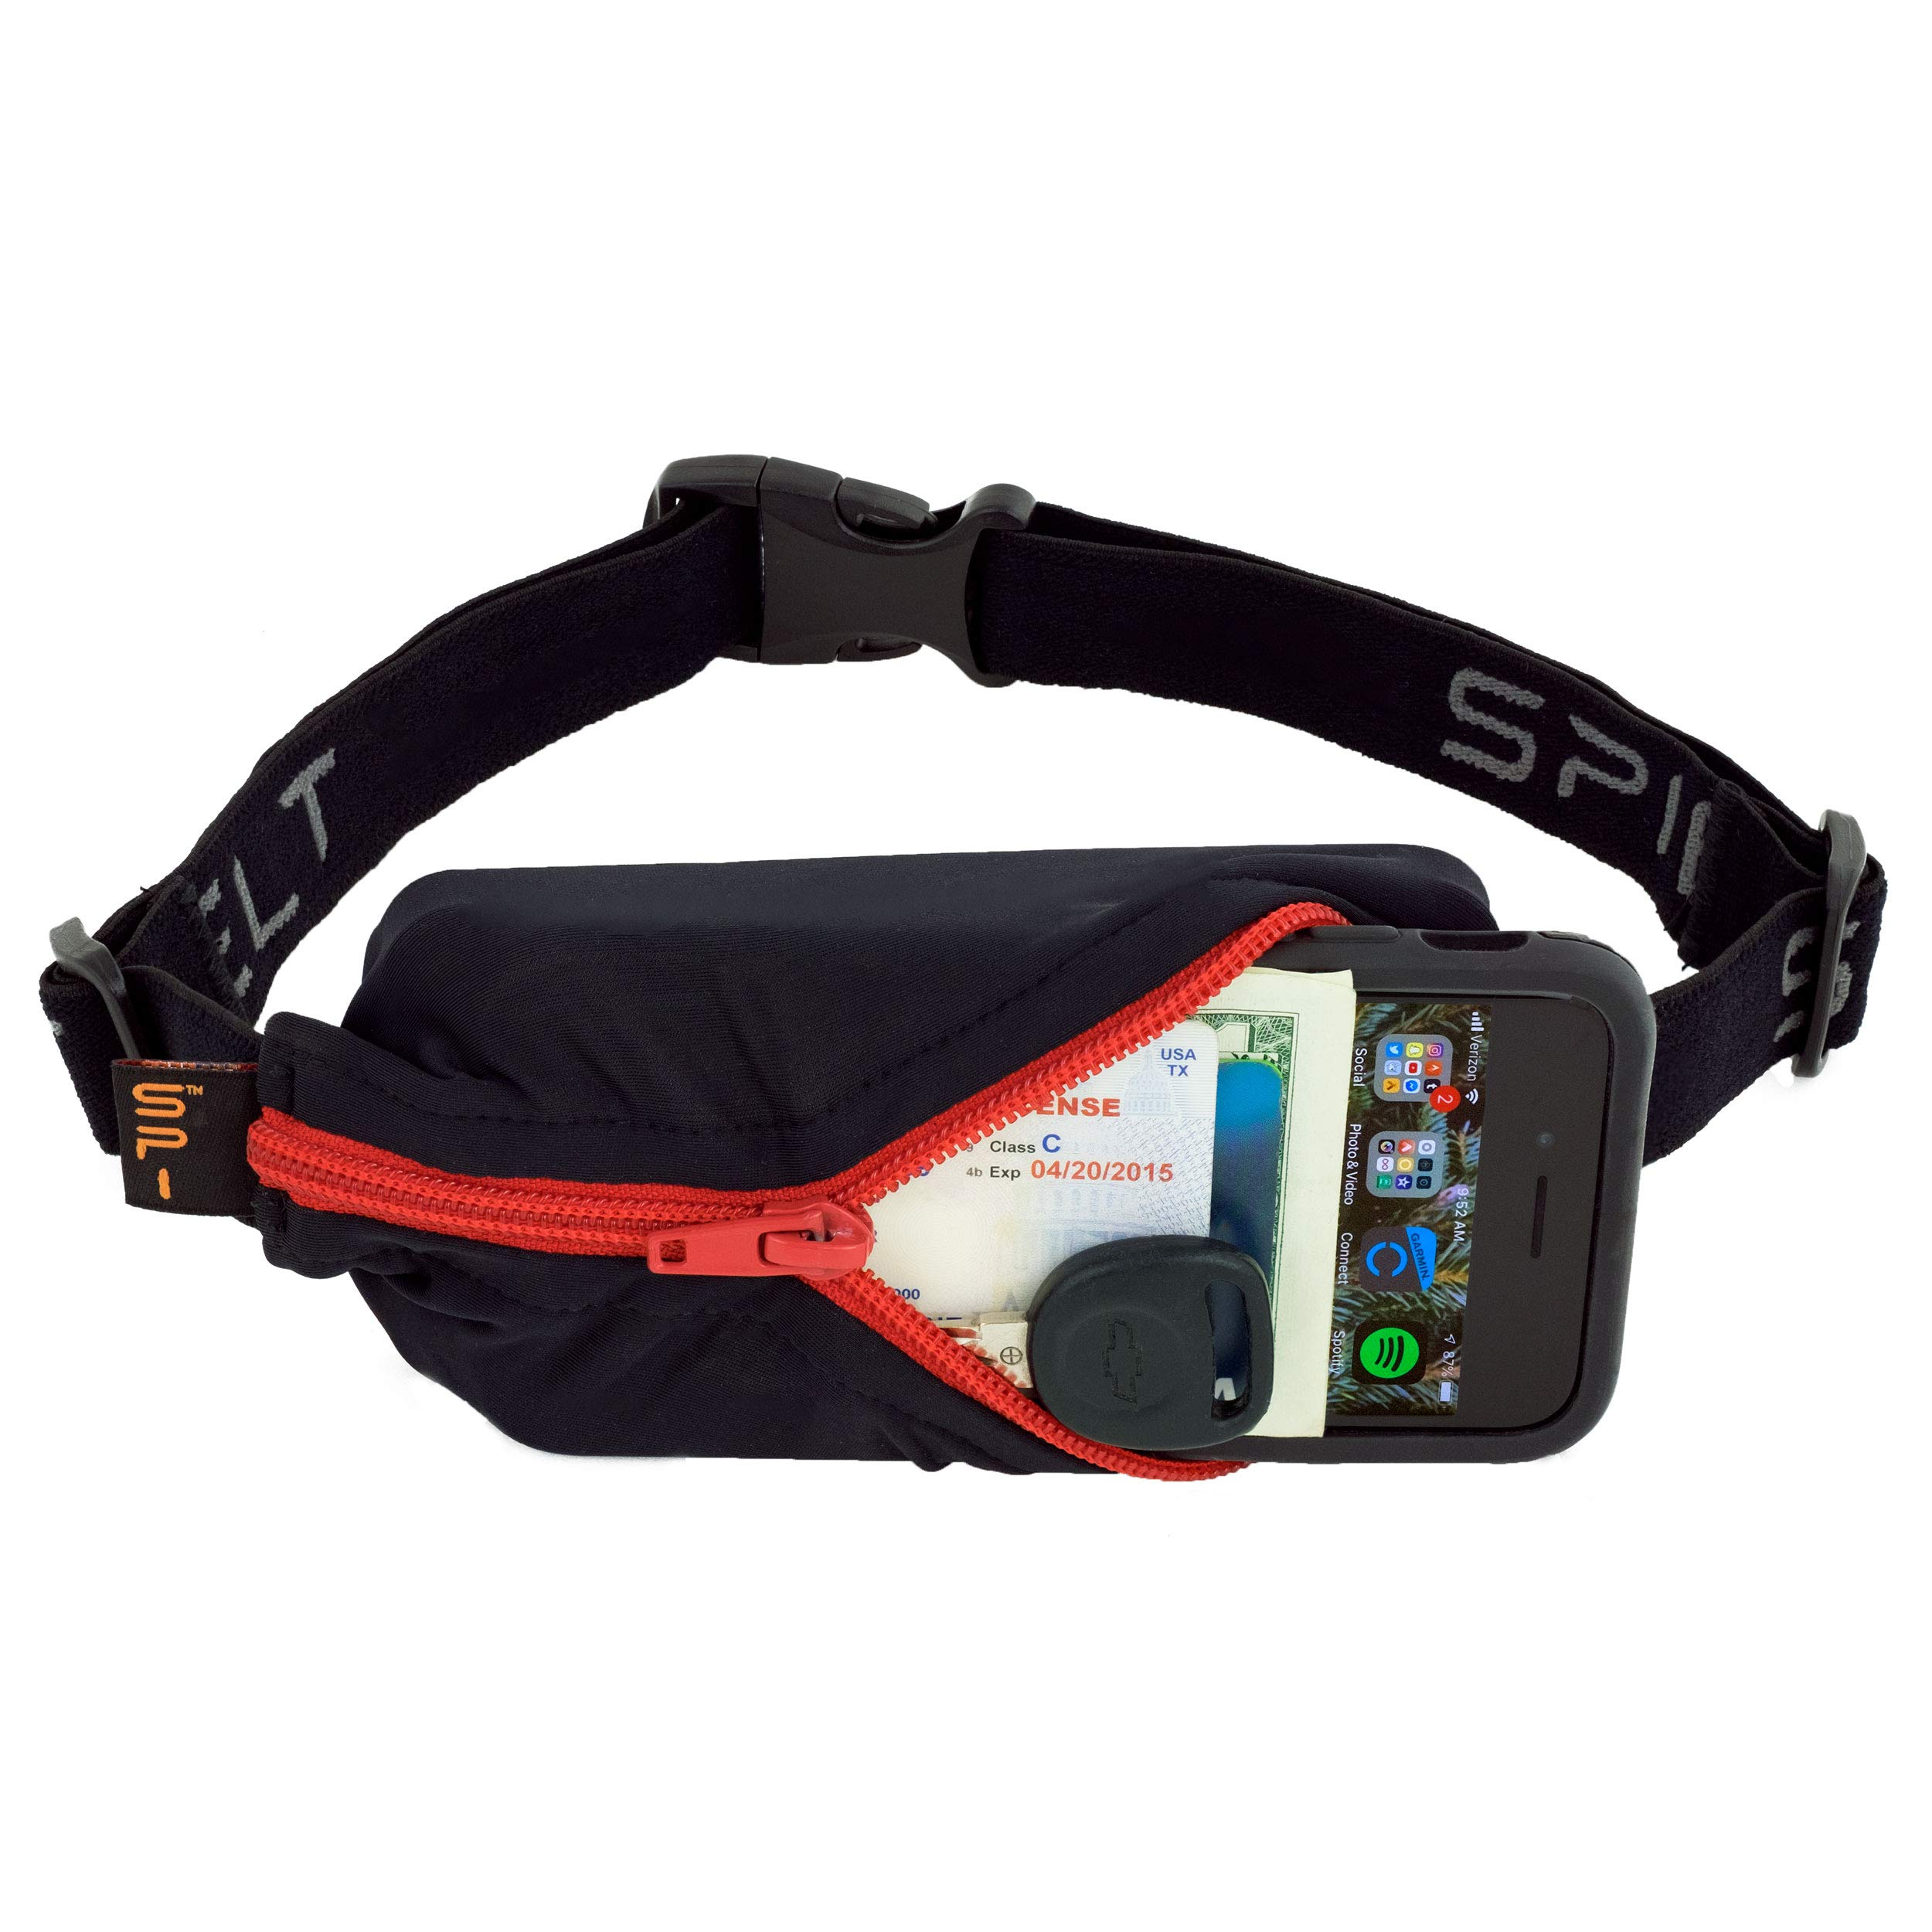 SPIbelt Sports/Running Belt: Original - No-Bounce Running Belt for Runners, Athletes and Adventurers - Fits iPhone 6 and Other Large Phones,Black with Red Zipper by SPIbelt